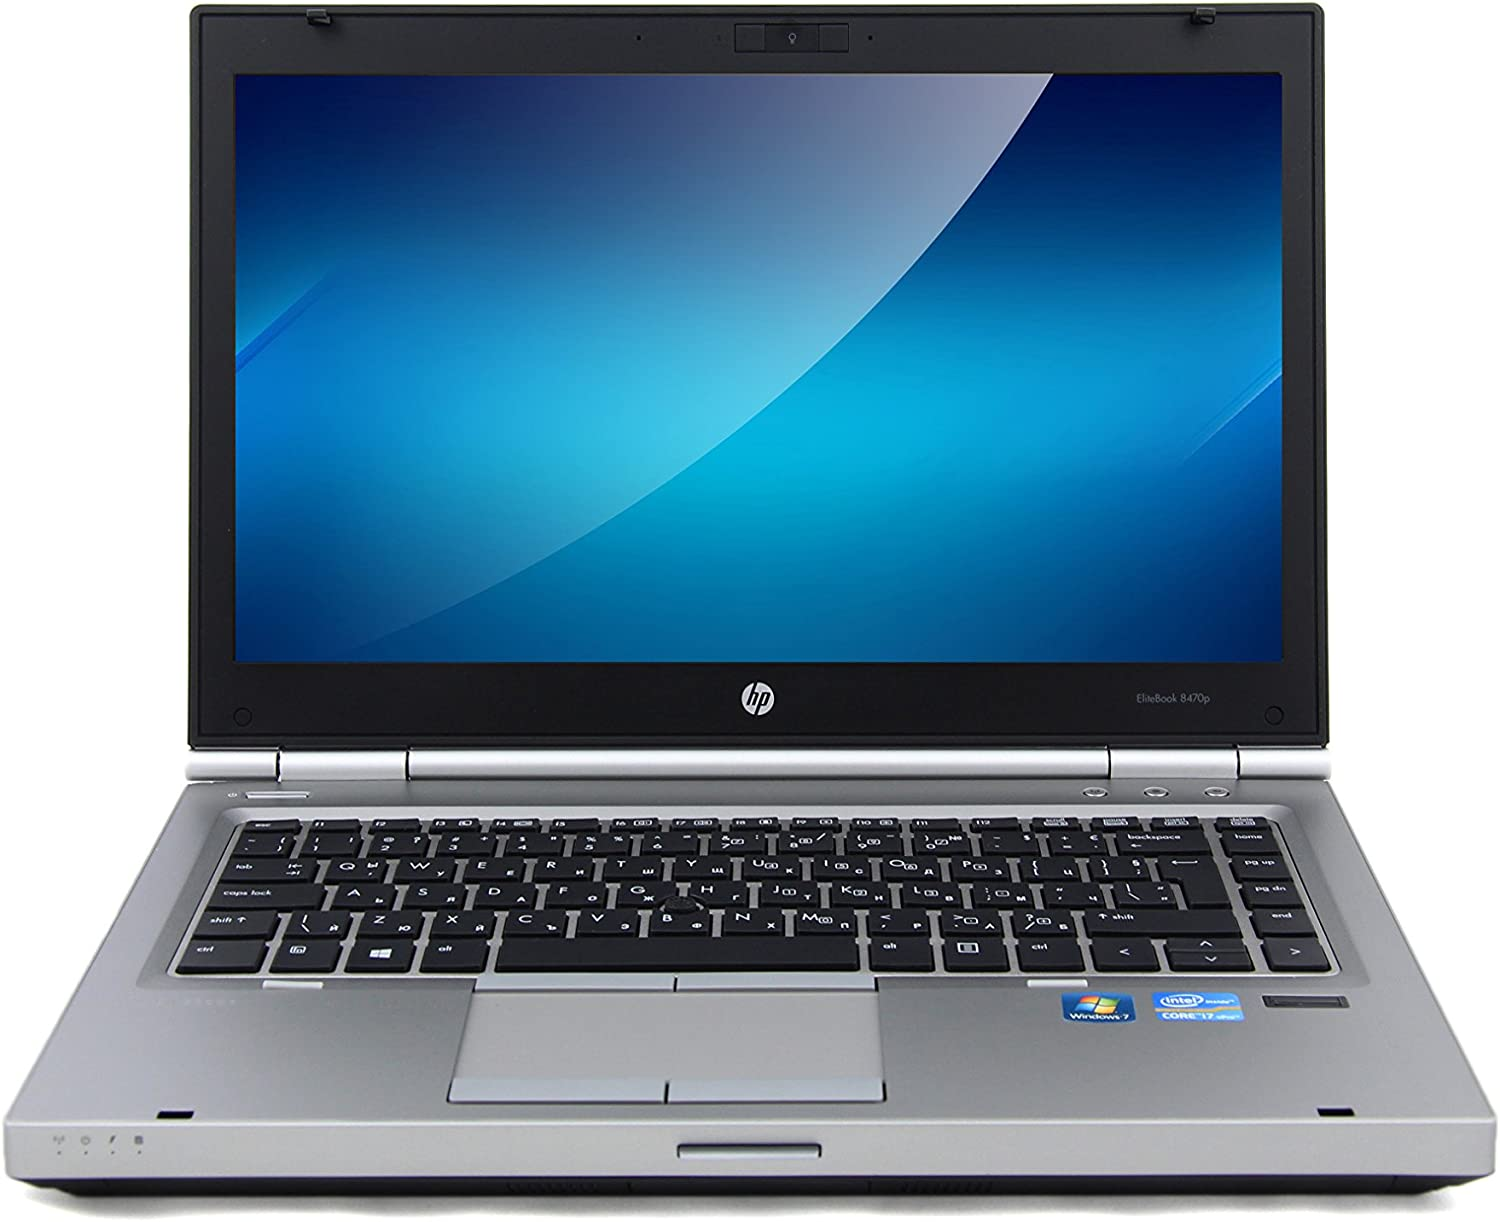 "HP EliteBook 8470p Intel i7 Dual Core 2900MHz 320Gig Serial ATA HDD 8192mb DDR3 DVD ROM Wireless WI-FI 14.0"" WideScreen LCD Genuine Windows 7 Professional 64 Bit Laptop Notebook Computer"